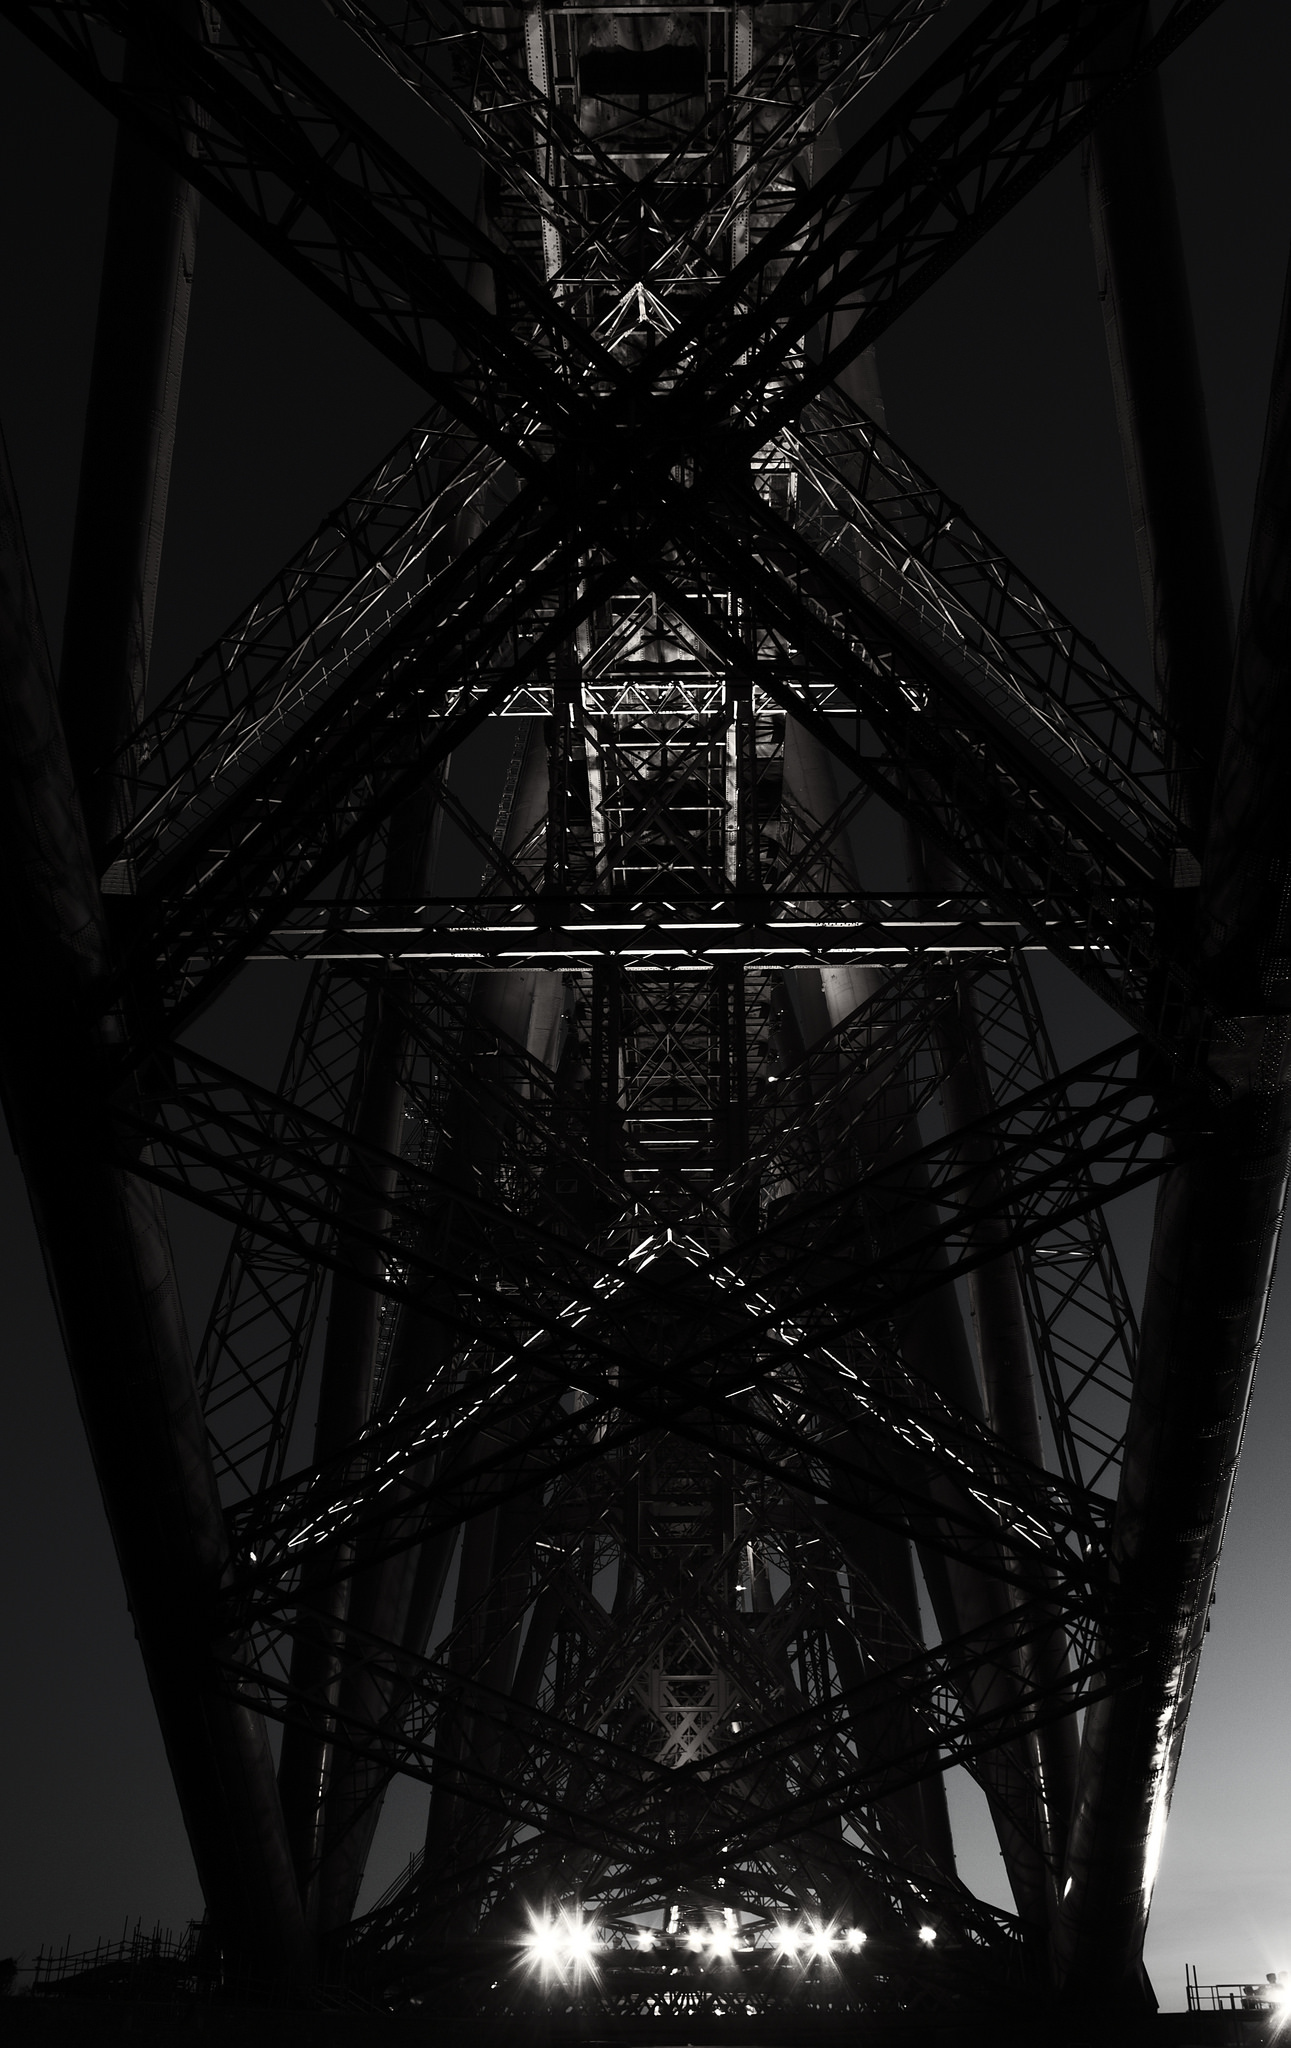 Underside of the Forth Rail Bridge